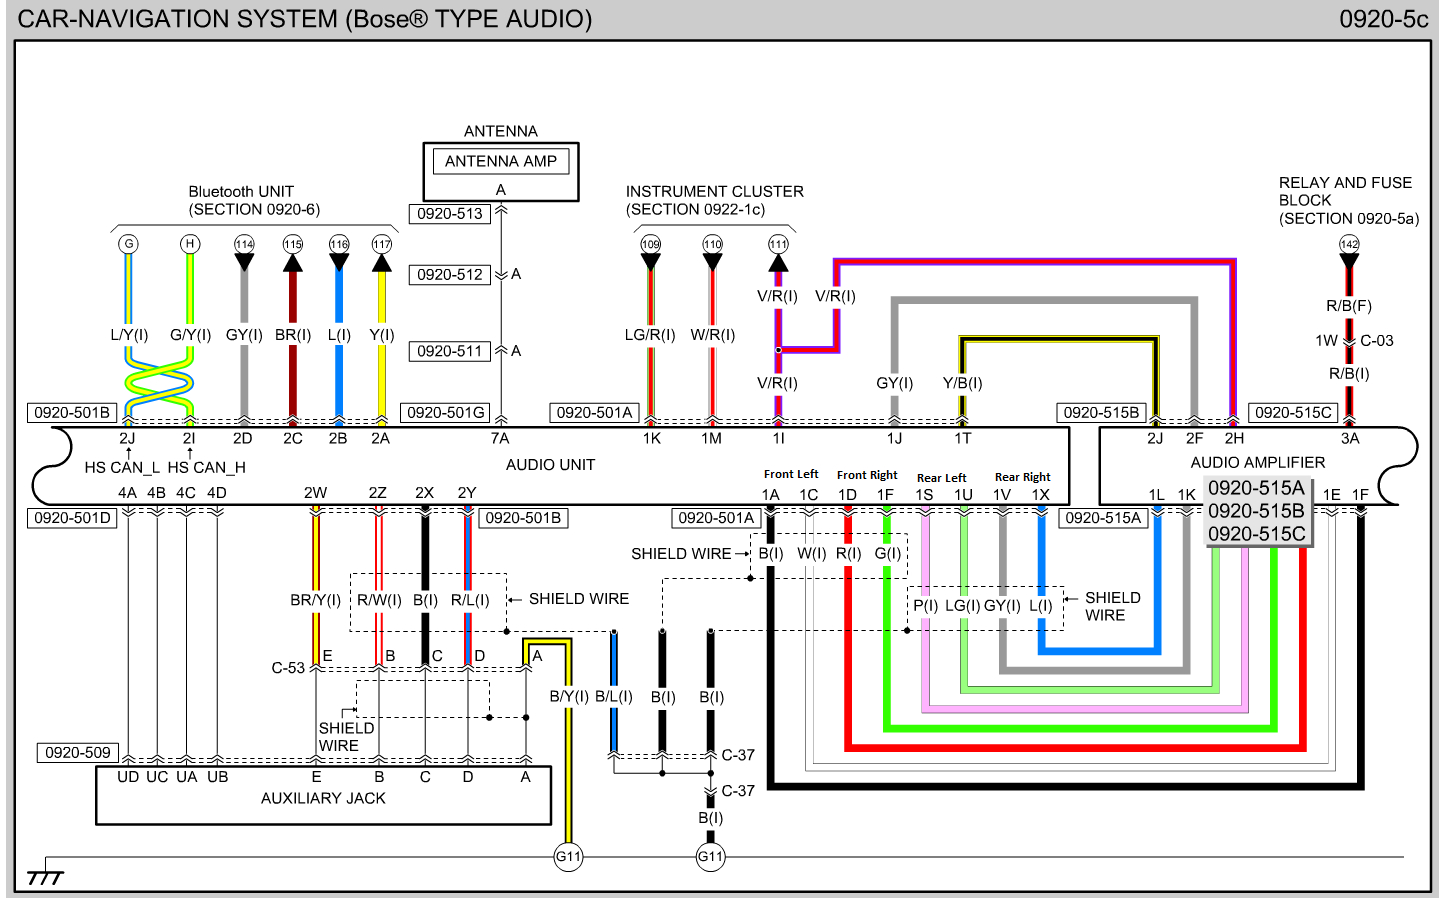 Bose Car Stereo Wiring Diagrams | Wiring Diagram - Bose Car Amplifier Wiring Diagram